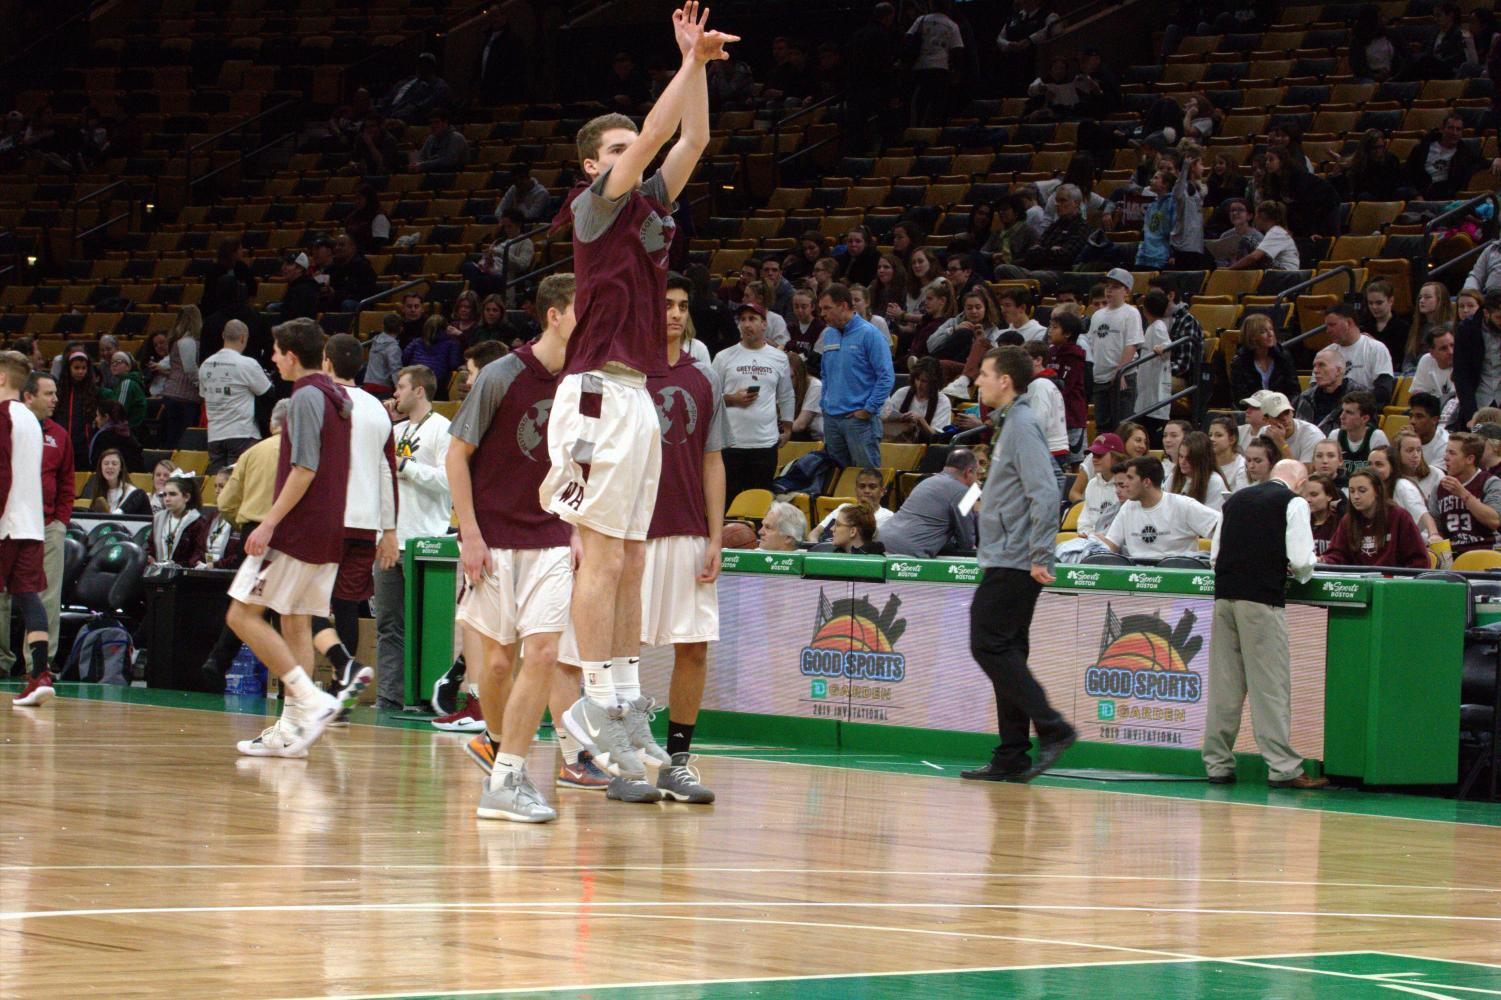 Senior+Michael+Zacharchuk+shoots+a+three-pointer+during+warmups+for+WA%27s+game+against+Groton-Dunstable.